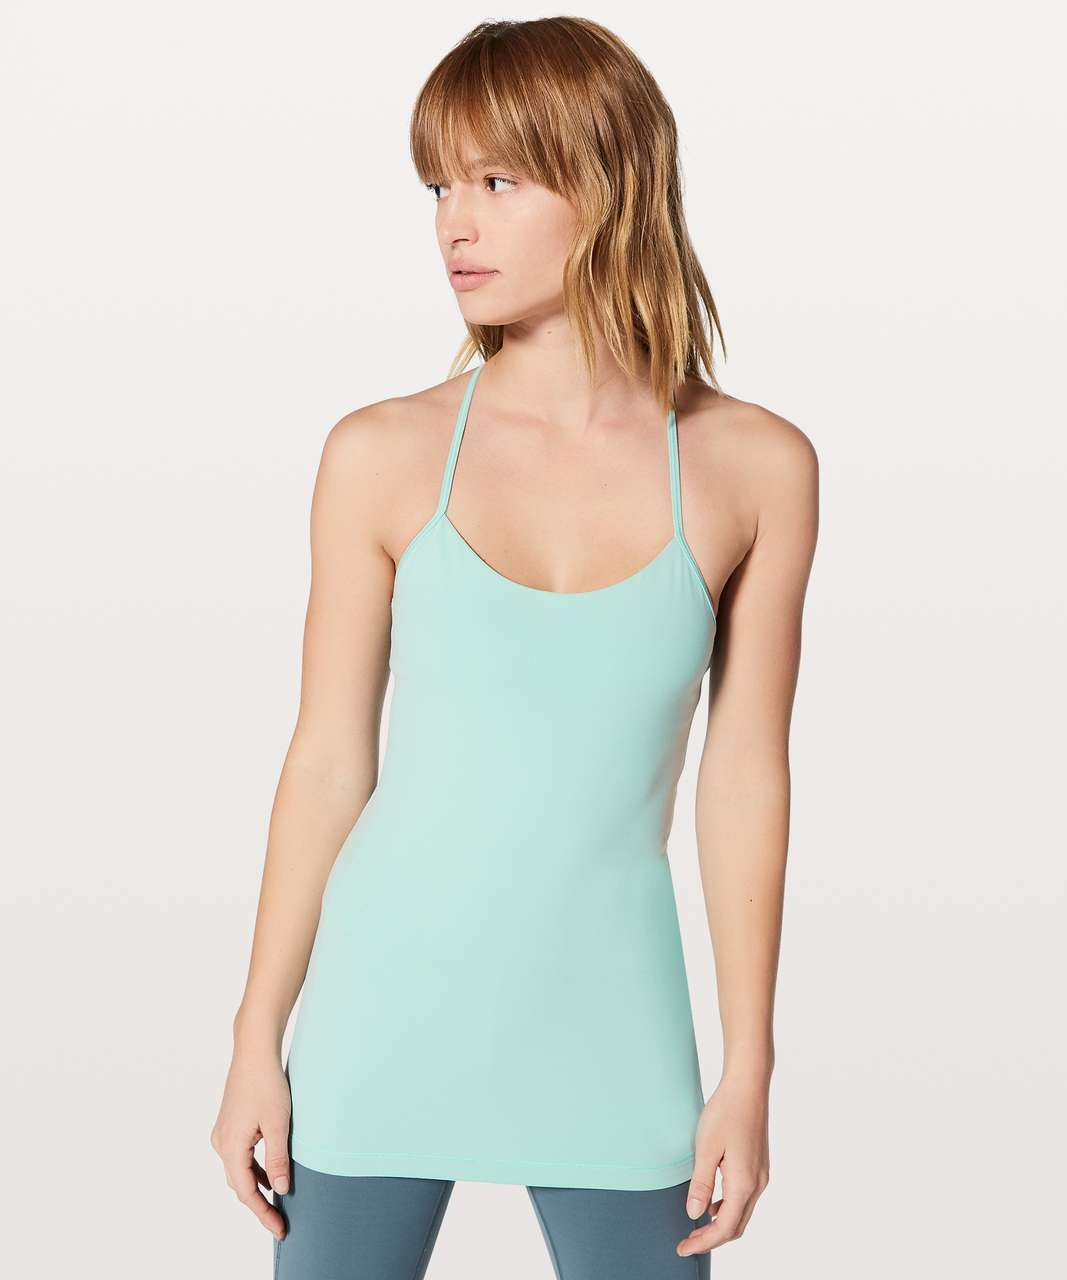 Lululemon Power Pose Tank *Light Support For A/B Cup - Tonic Sea